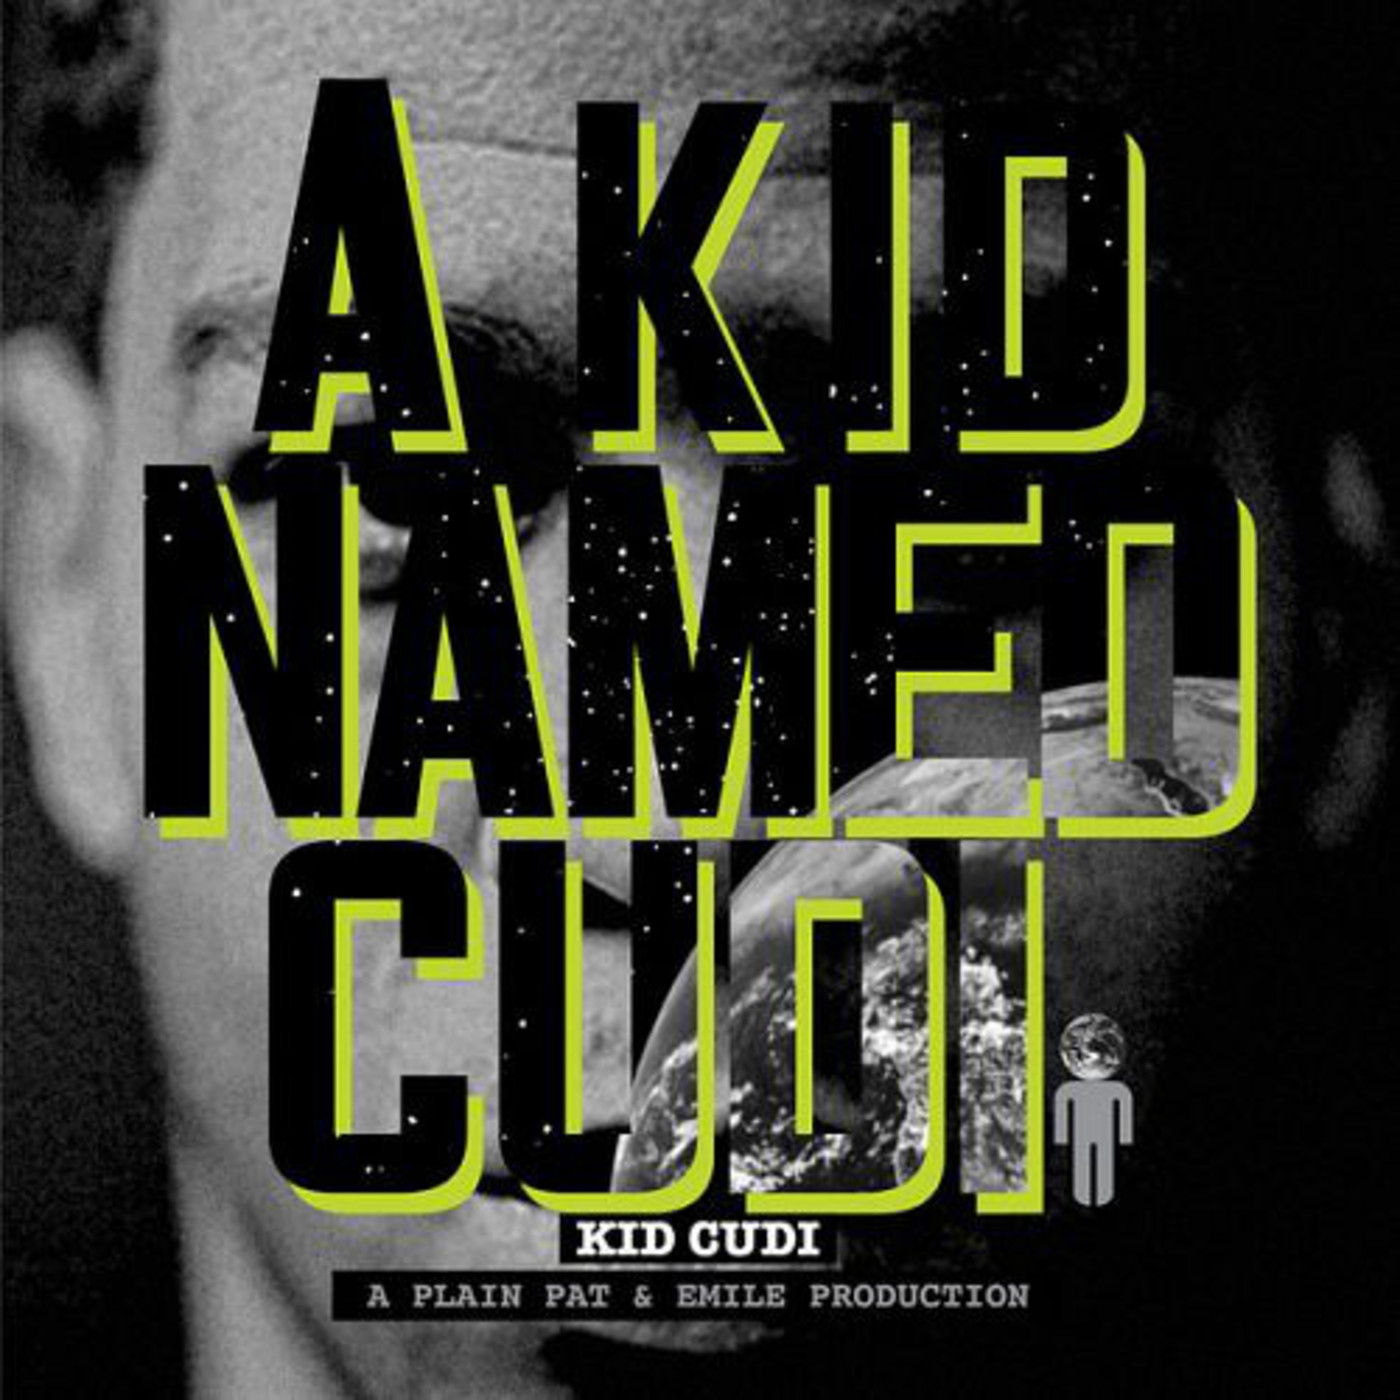 rapper-mix-tape-a-kid-named-cudi